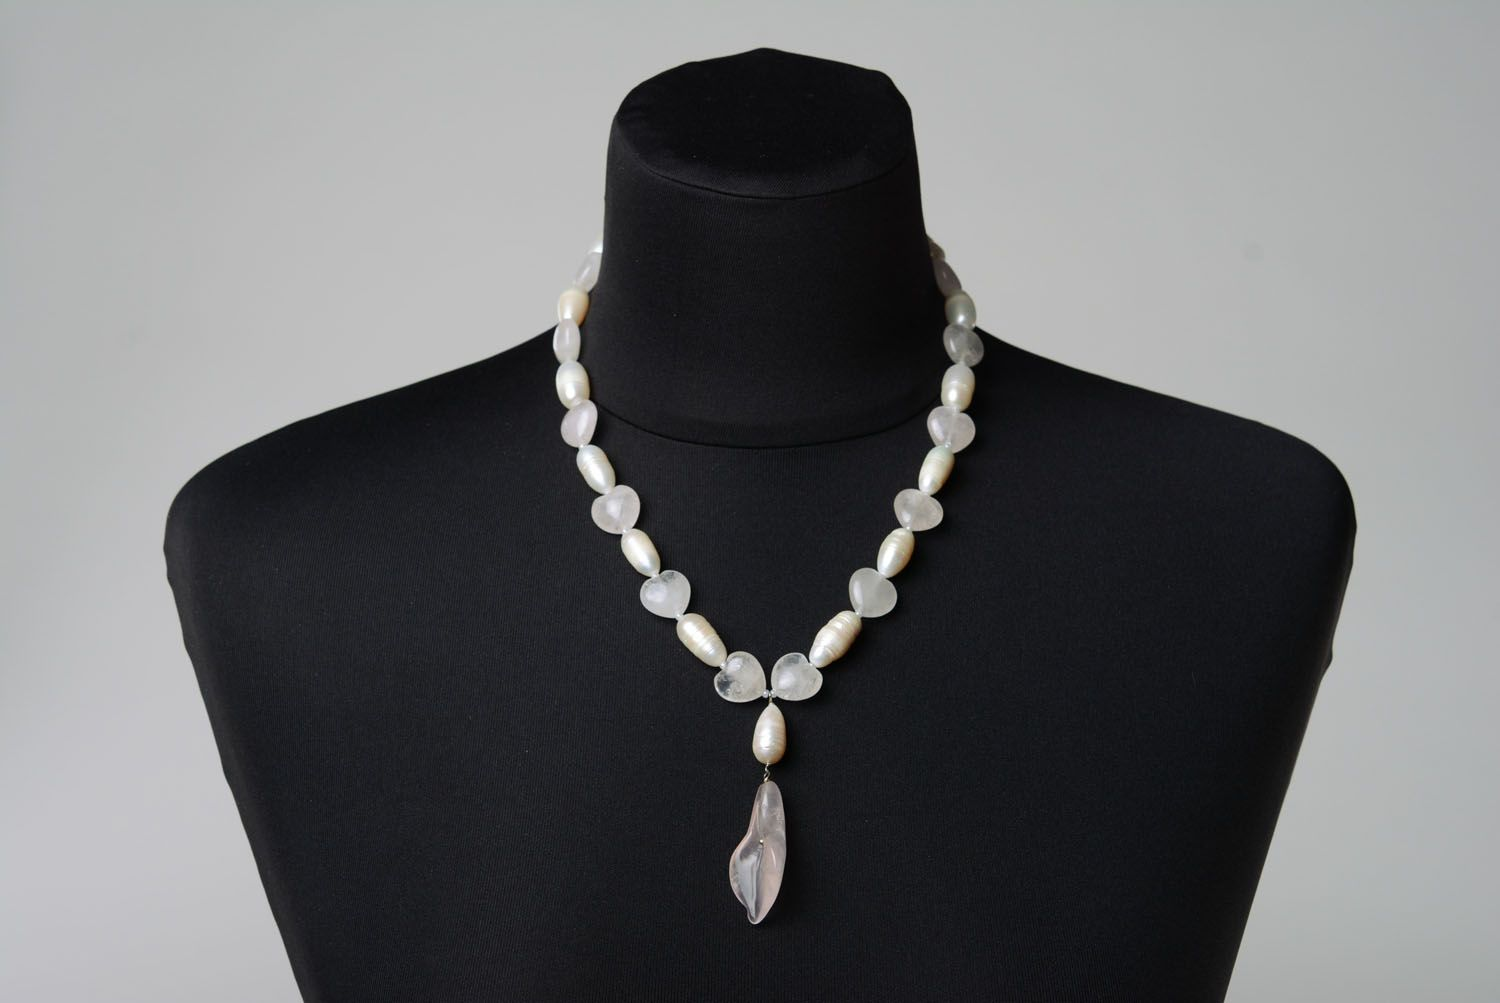 Designer's necklace made of natural stone photo 2